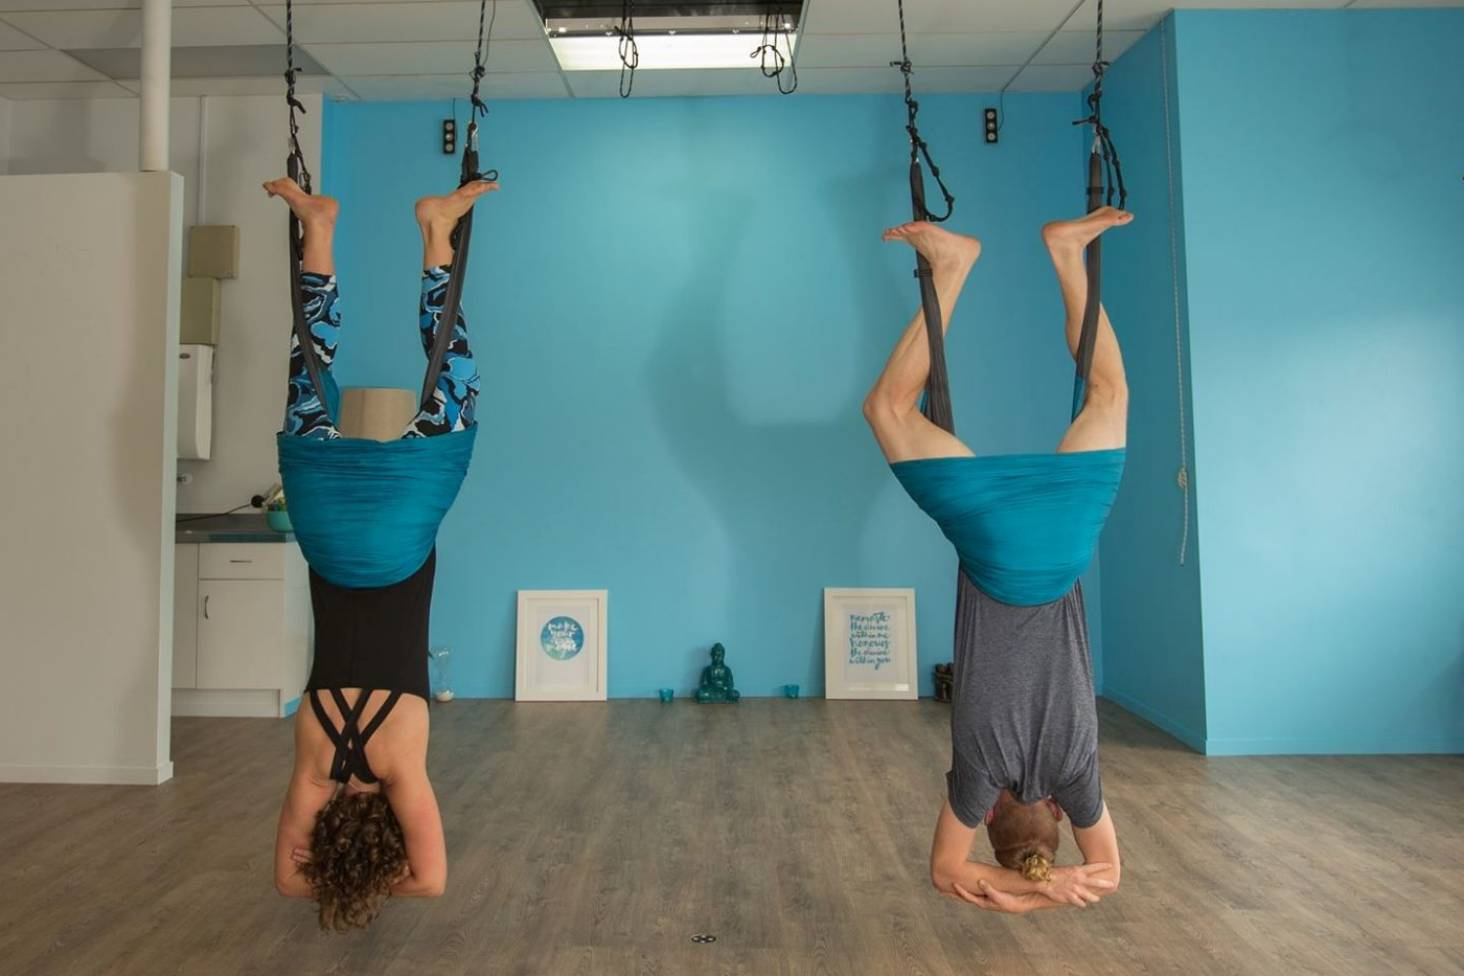 We try aerial yoga   pairing traditional poses with aerial arts ...